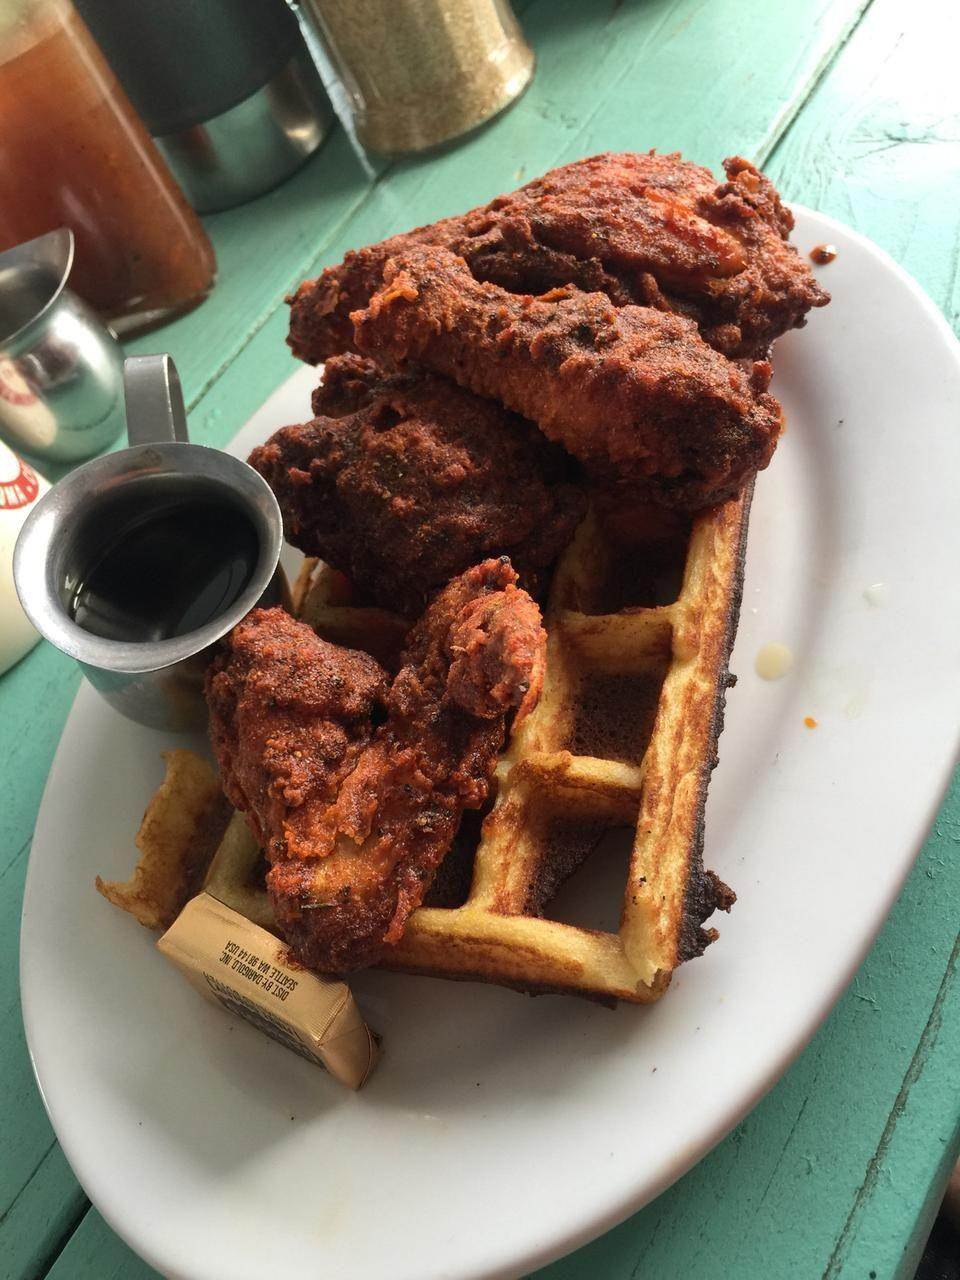 """<p><a href=""""https://www.tripadvisor.com/Restaurant_Review-g33107-d2325083-Reviews-The_Fremont_Diner-Sonoma_Sonoma_County_California.html"""" rel=""""nofollow noopener"""" target=""""_blank"""" data-ylk=""""slk:The Fremont Diner"""" class=""""link rapid-noclick-resp"""">The Fremont Diner</a><span class=""""redactor-invisible-space"""">, Somoma</span><br></p><p>Chicken and waffles are out of this world. - Foursquare user <a href=""""https://foursquare.com/gogoanita"""" rel=""""nofollow noopener"""" target=""""_blank"""" data-ylk=""""slk:Anita Gouloomian"""" class=""""link rapid-noclick-resp"""">Anita Gouloomian</a></p>"""